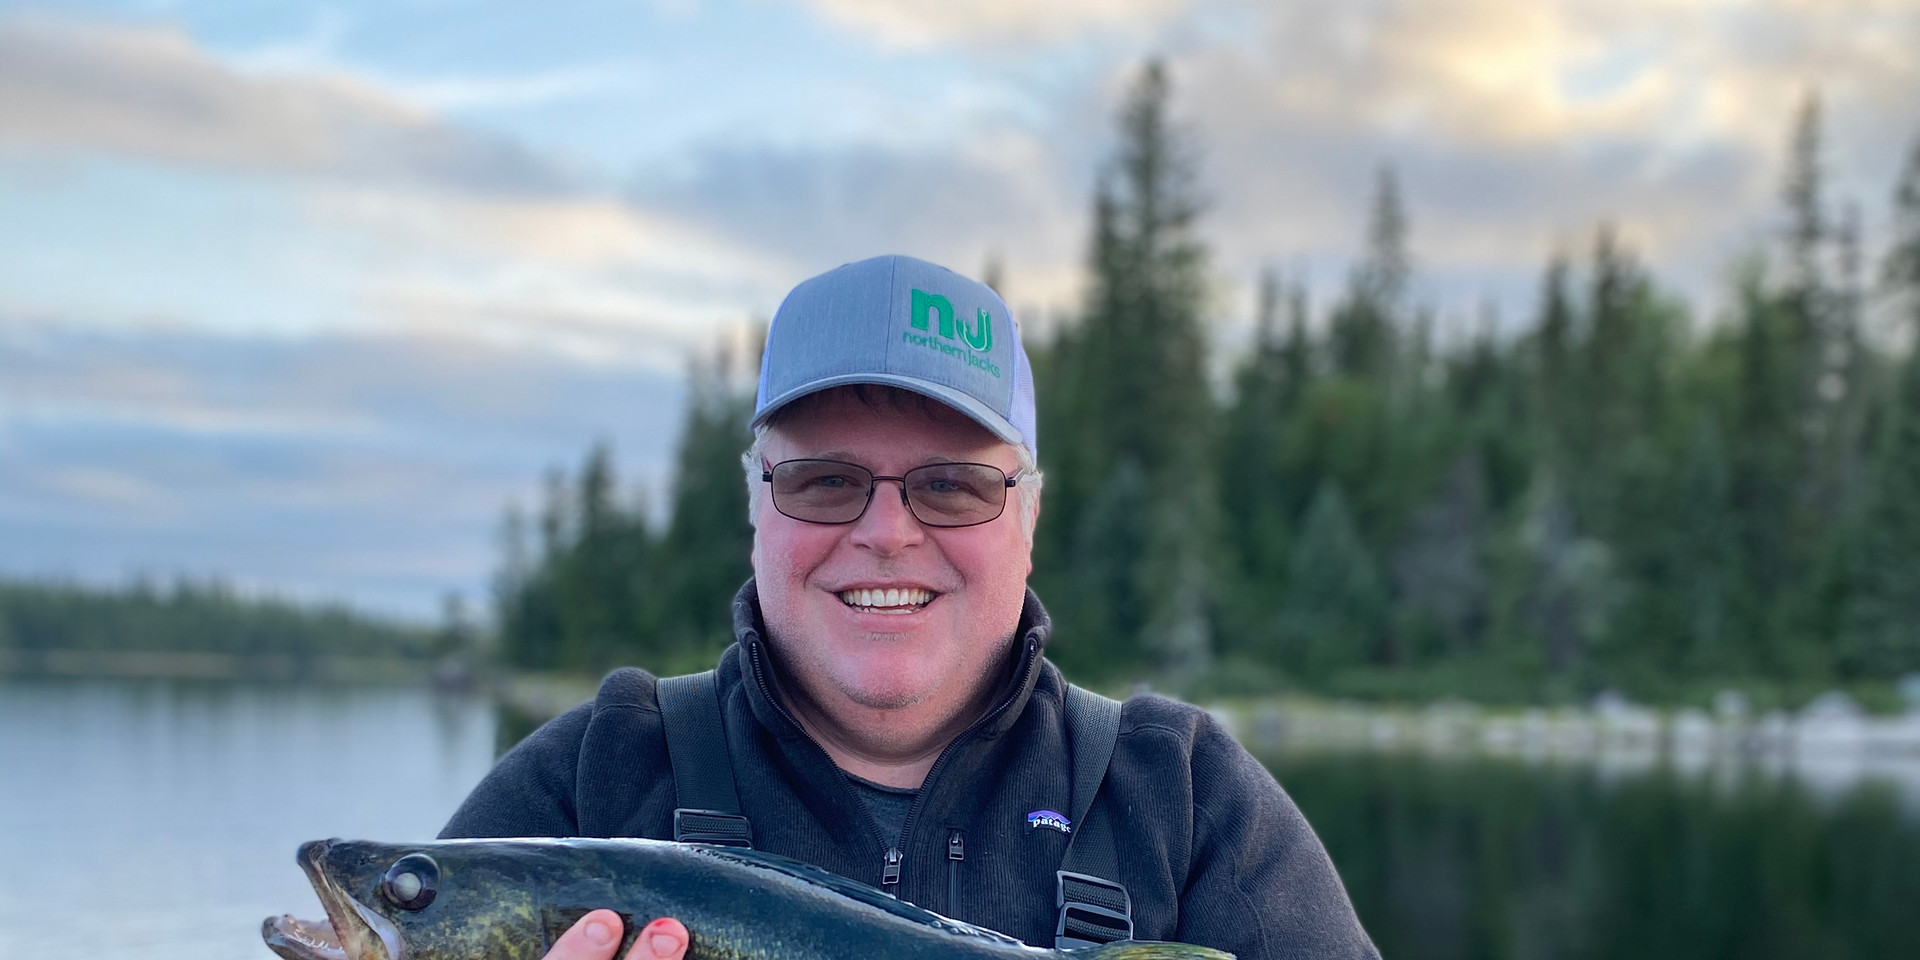 Possibly my favorite picture - Dave w a beauty on Lake St Joseph